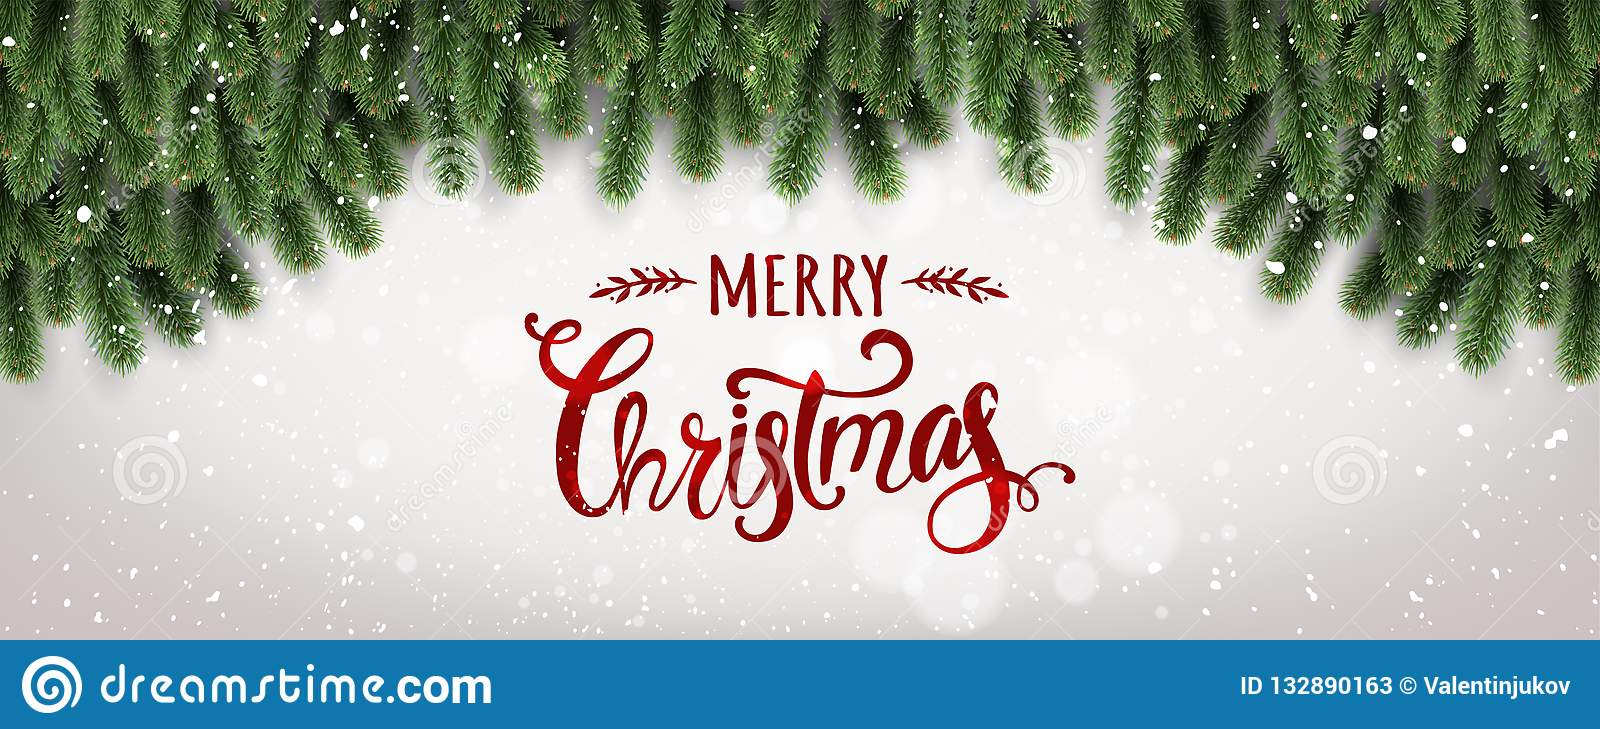 Merry Christmas Typographical on white background with tree branches decorated with stars, lights, snowflakes.